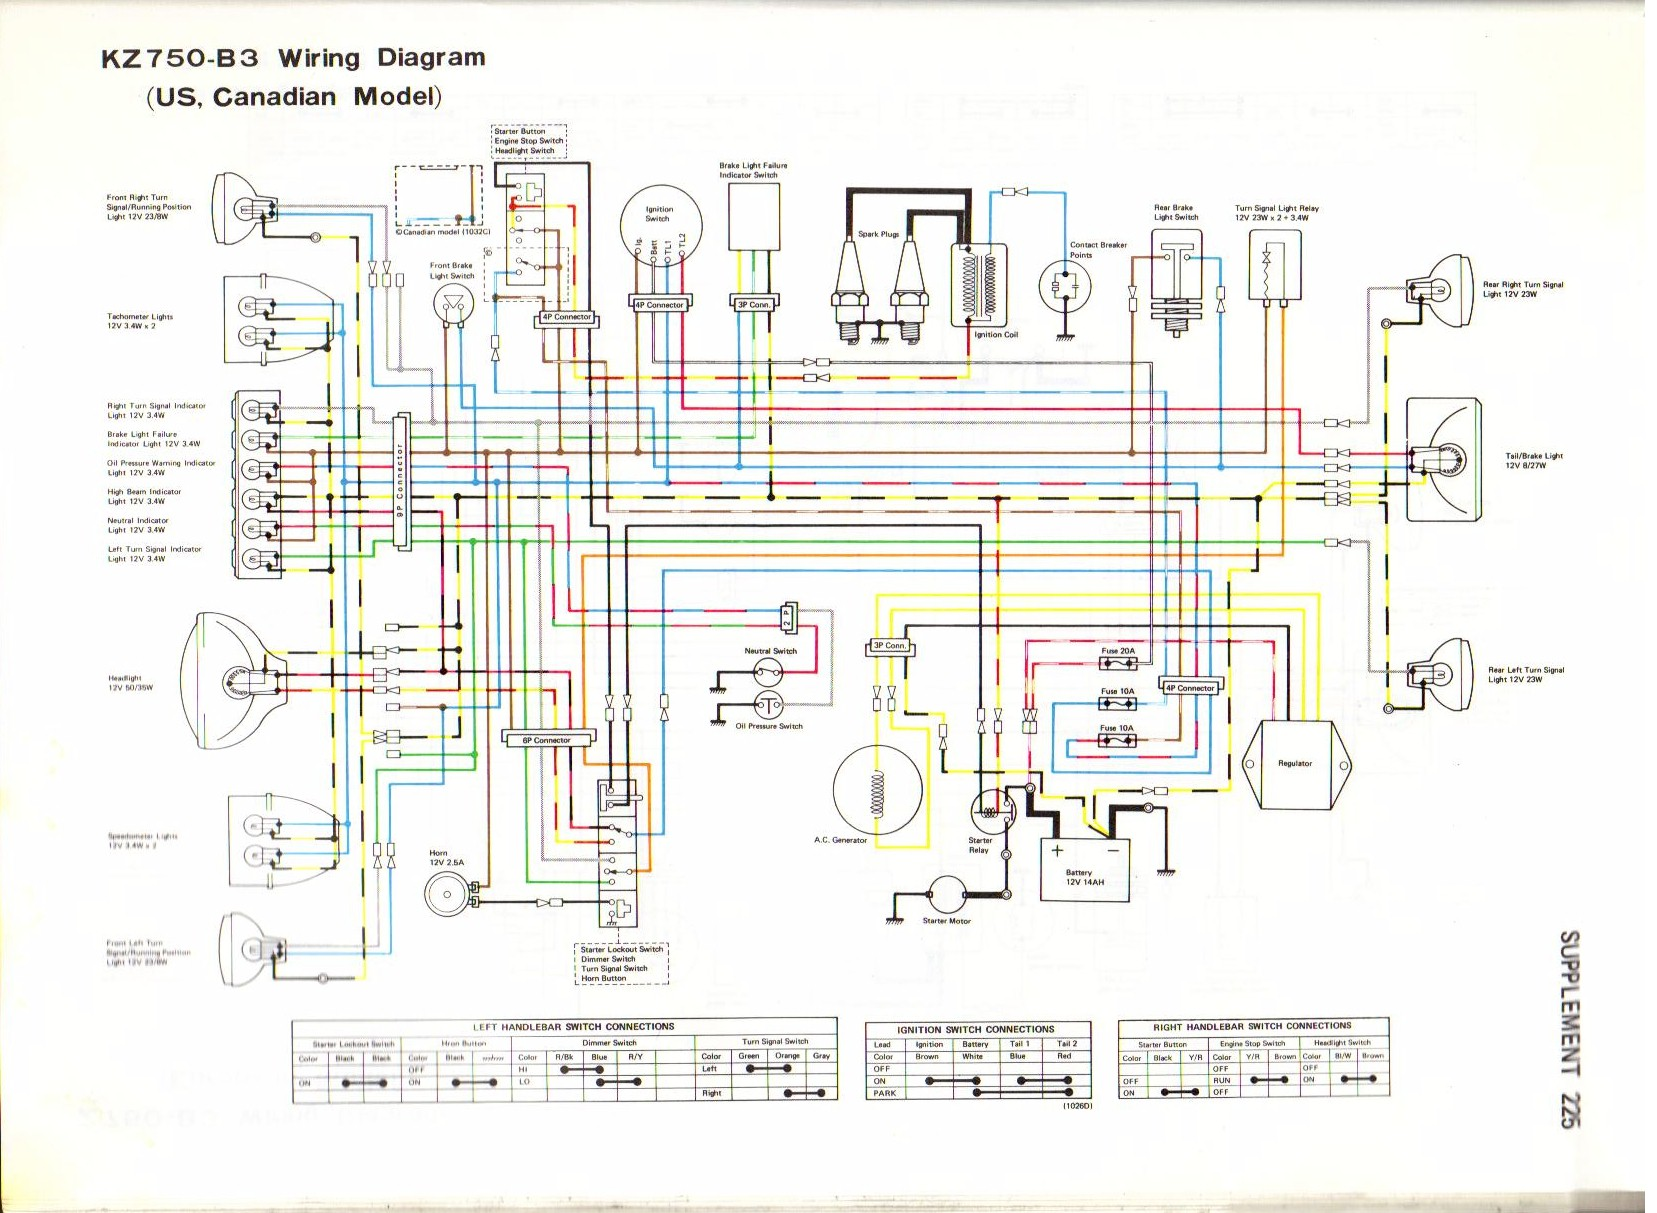 hight resolution of 1978 kawasaki 750 wiring diagram wiring diagram options kawasaki brute force 750 wiring diagram 1978 ltd